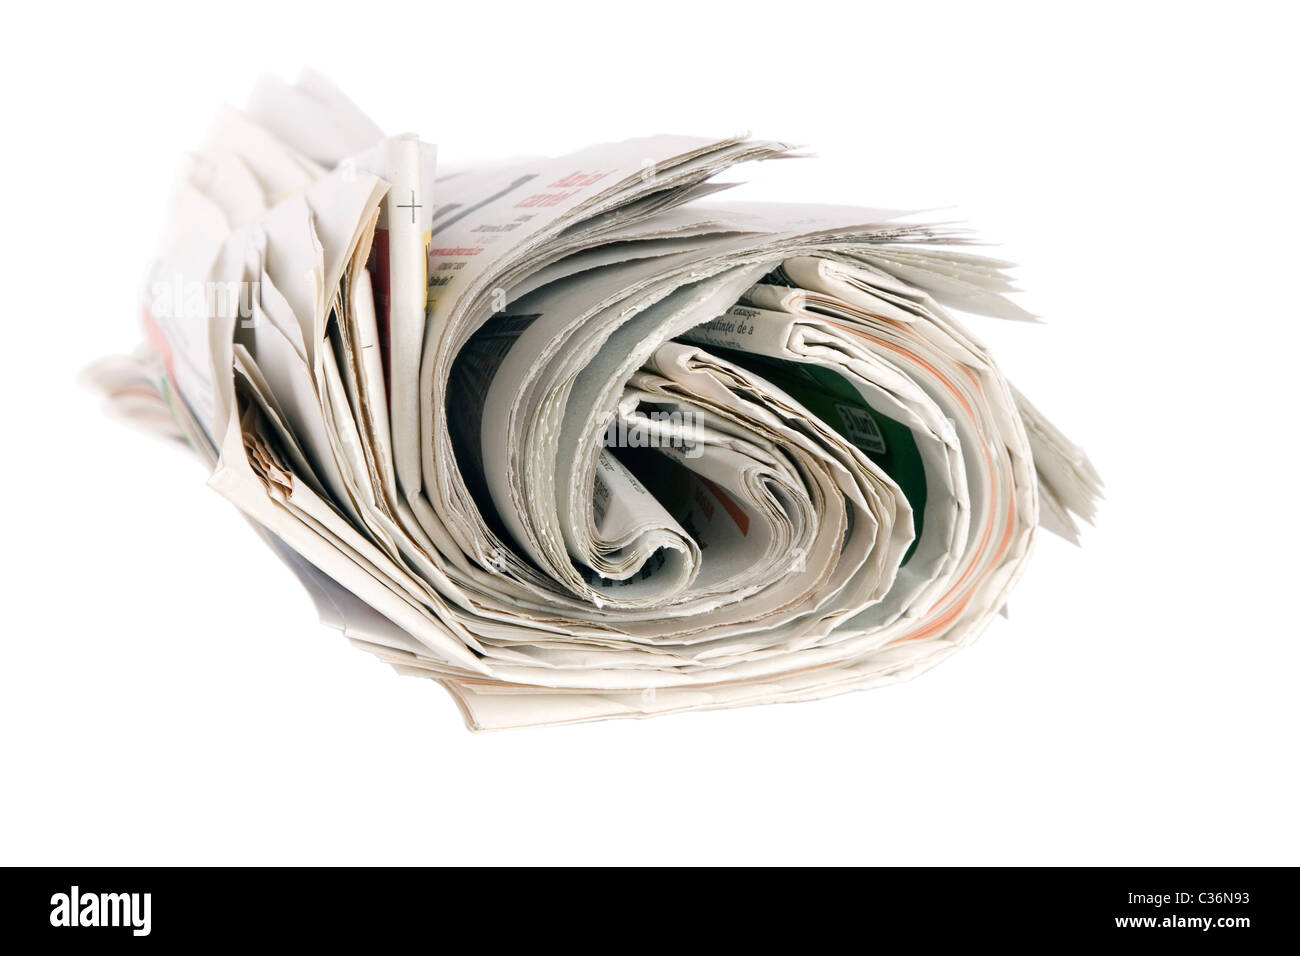 Roll of newspapers, isolated on white background - Stock Image